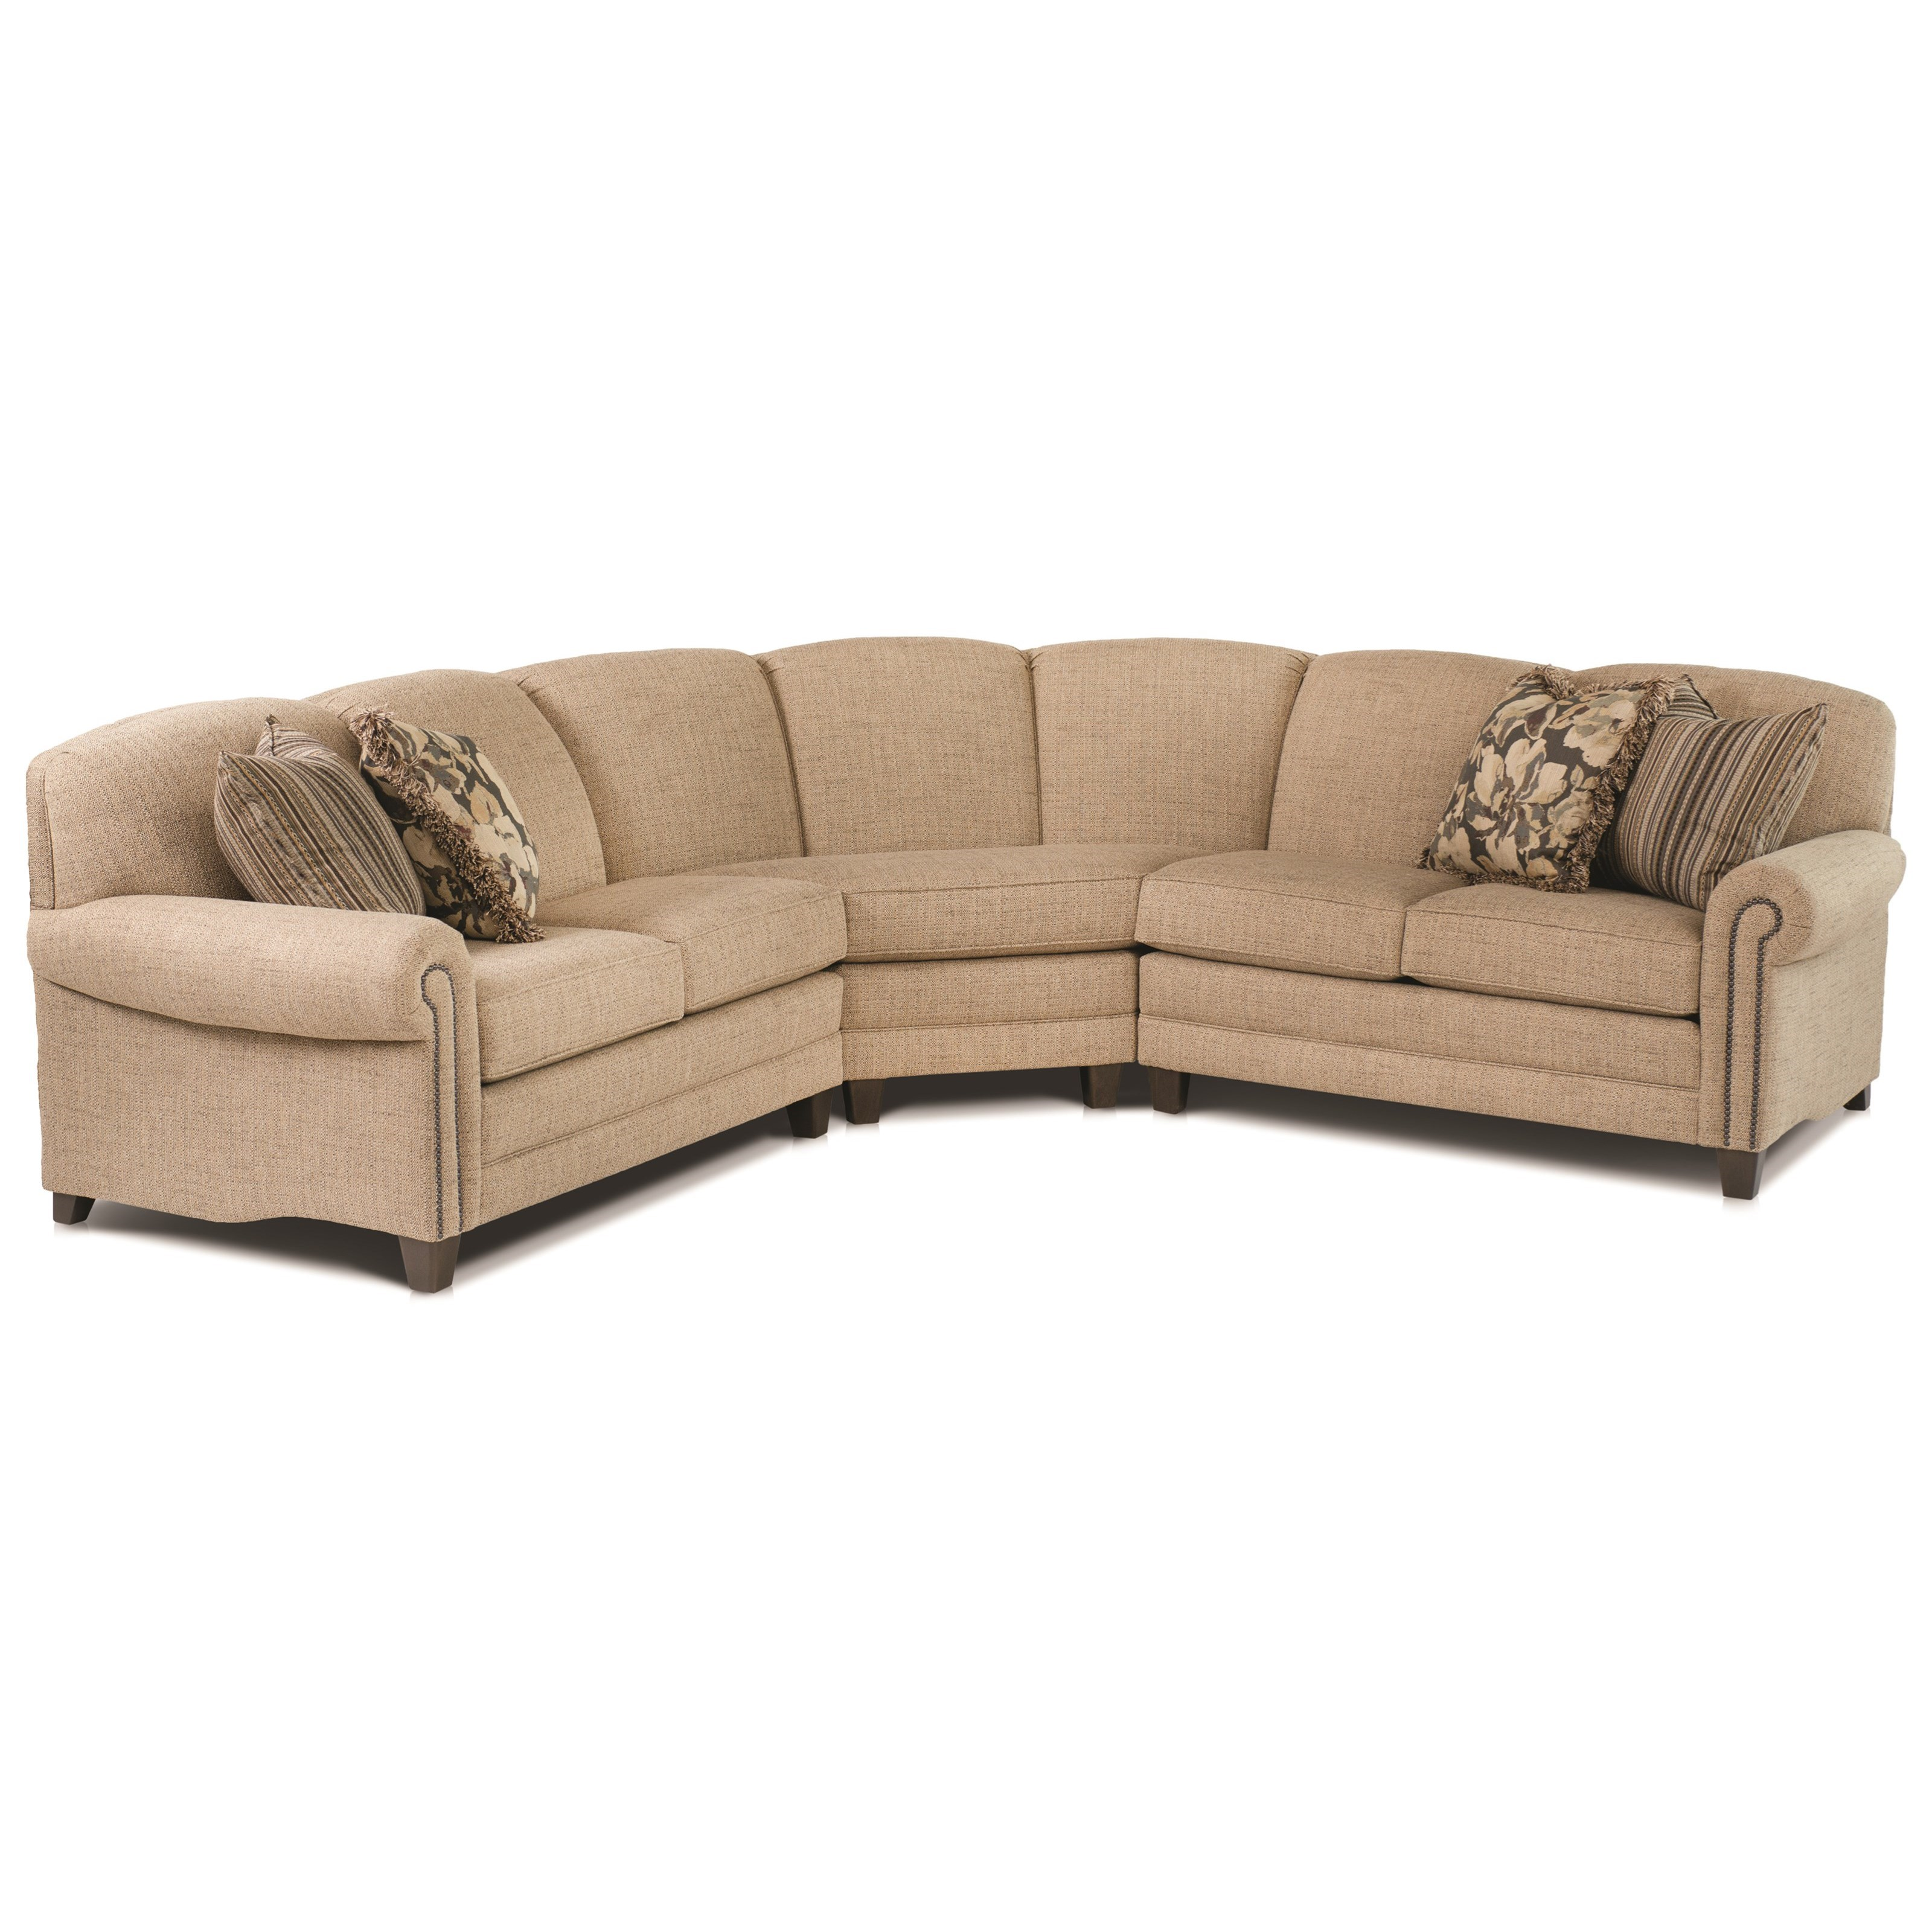 rolled arm sofa with nailhead trim ergonomic uk smith brothers 397 stationary sectional arms